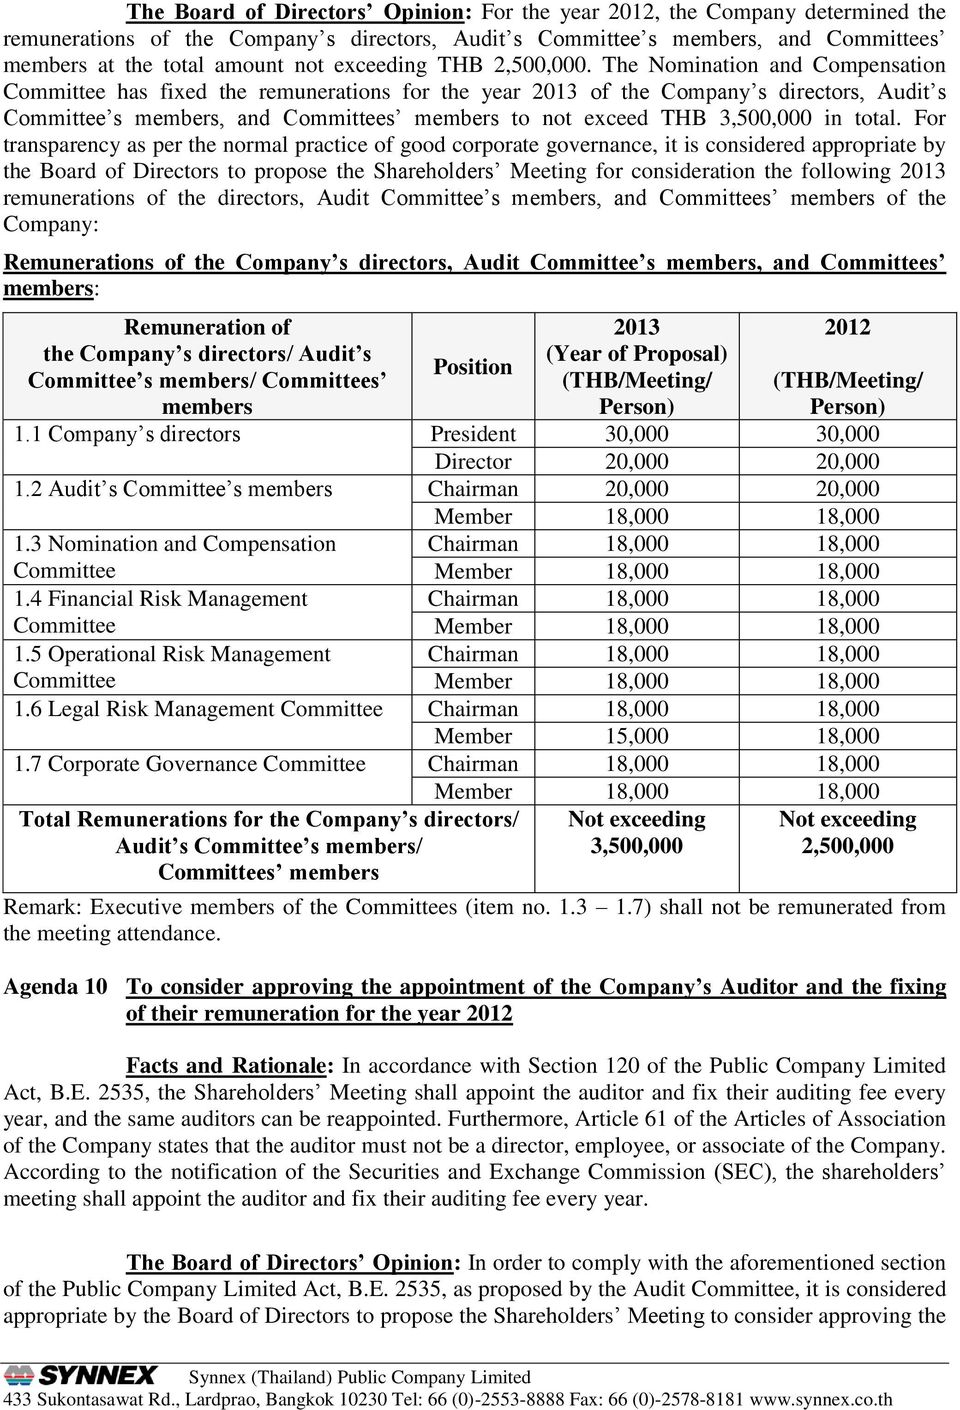 The Nomination and Compensation Committee has fixed the remunerations for the year 2013 of the Company s directors, Audit s Committee s members, and Committees members to not exceed THB 3,500,000 in